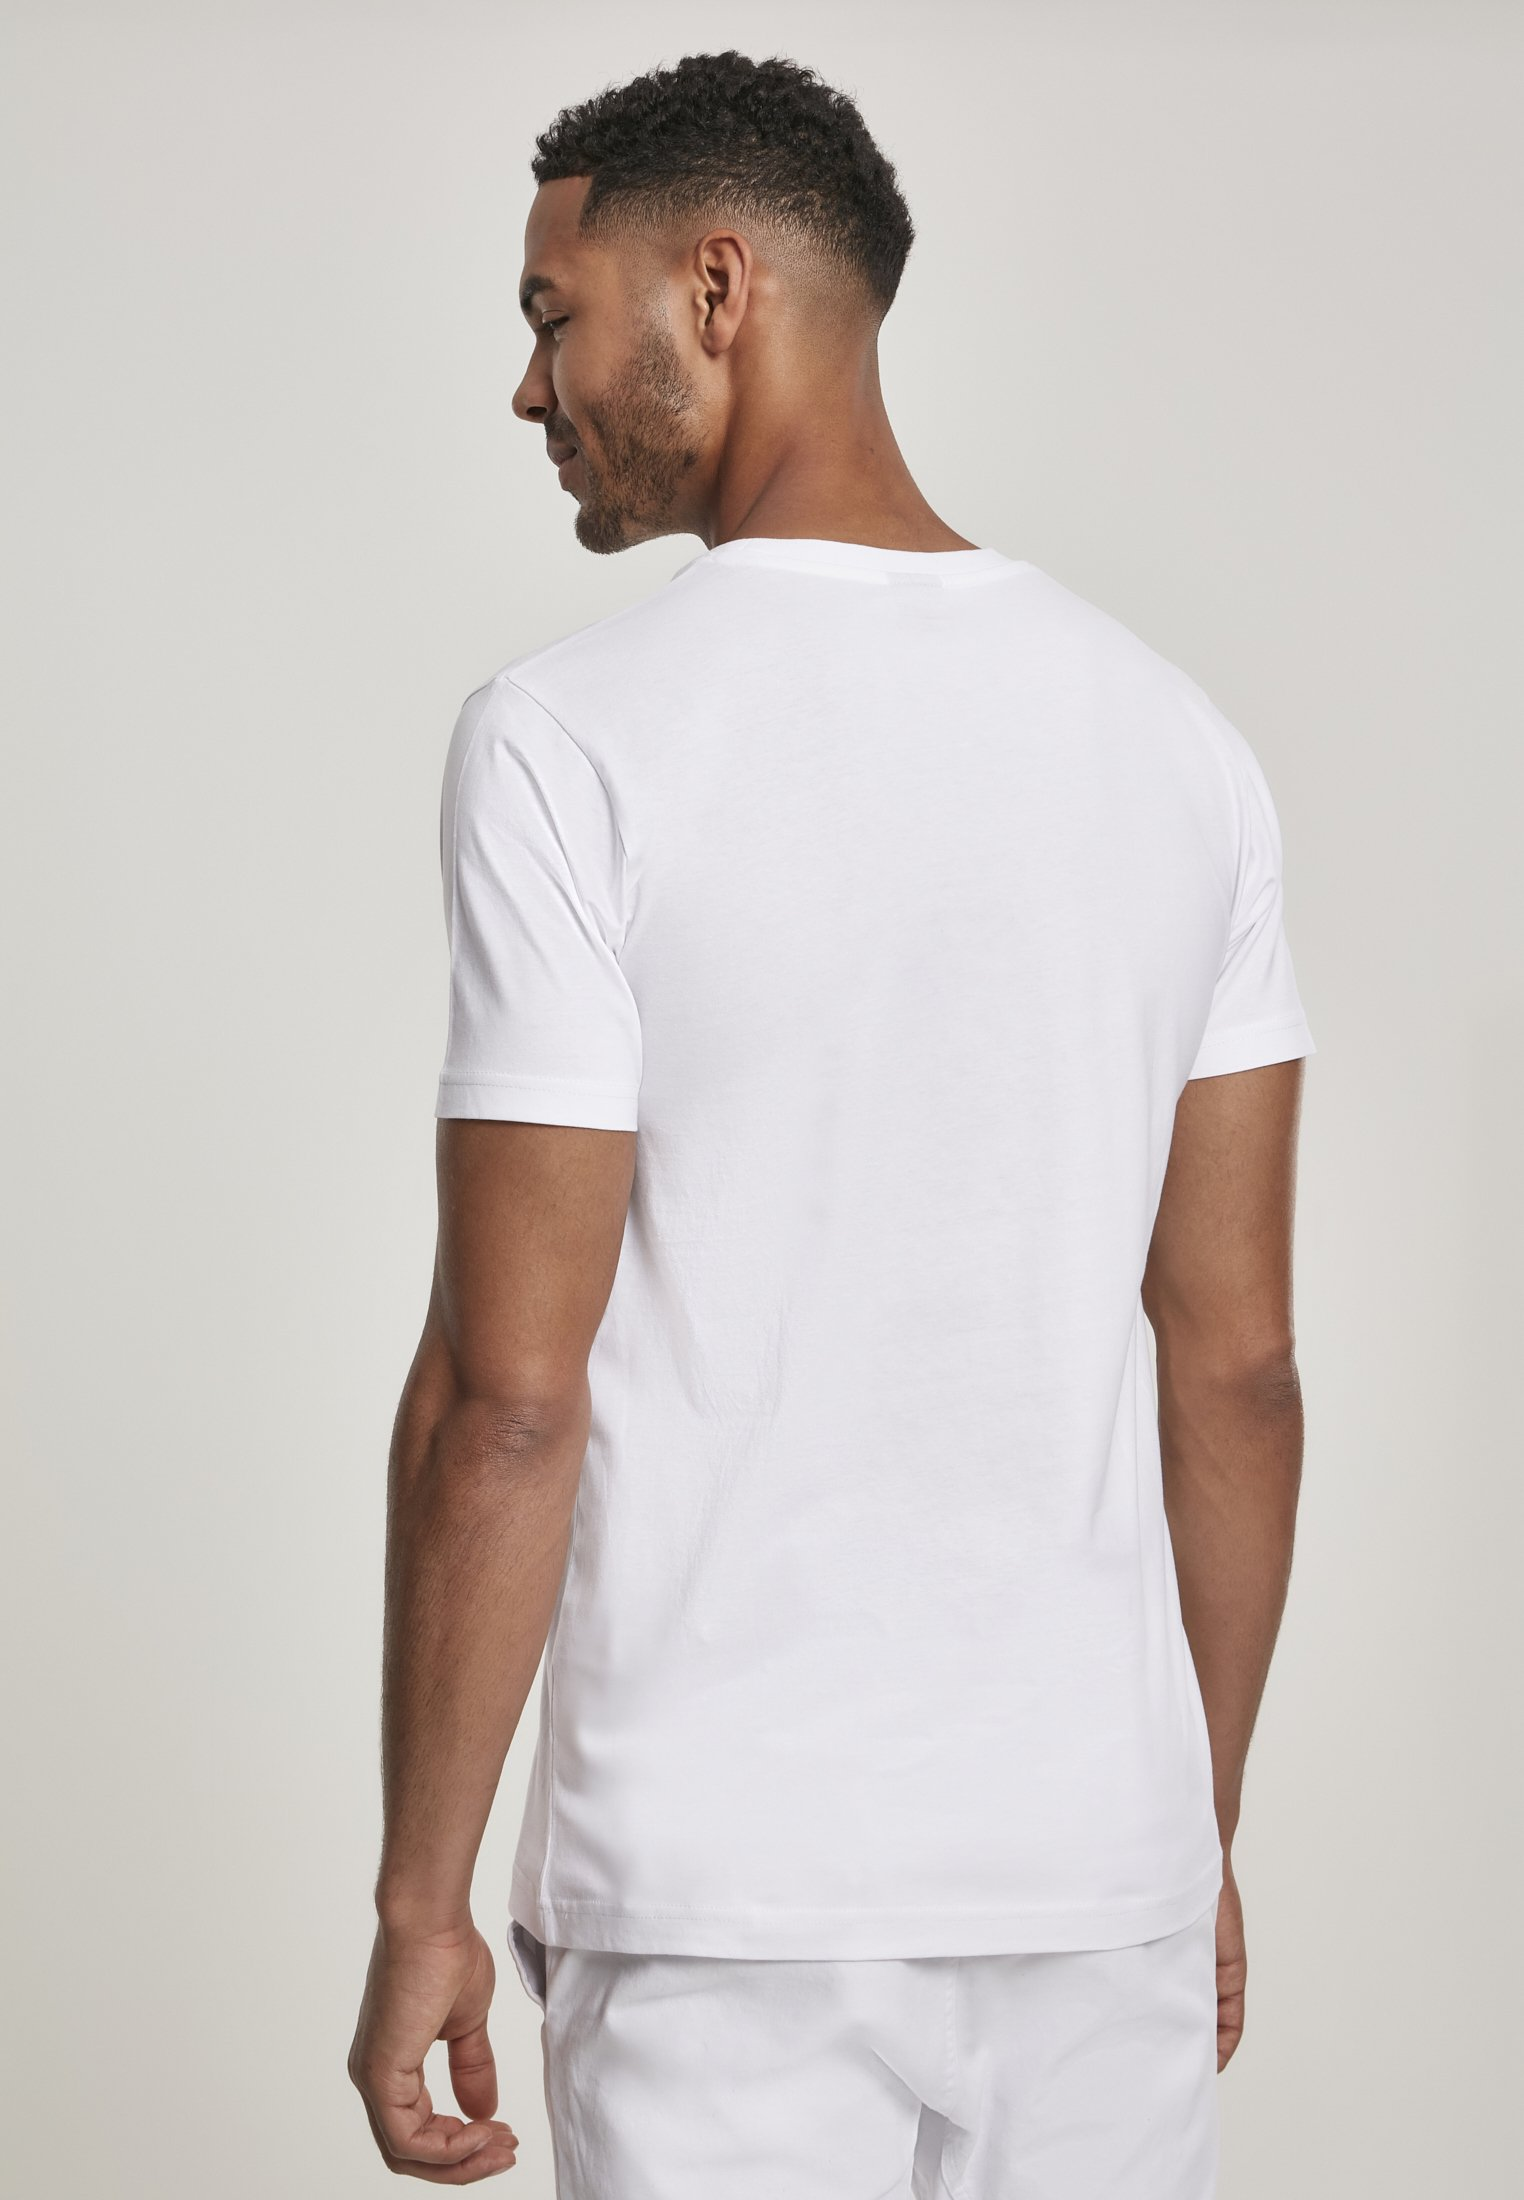 Mister Tee Problems - T-shirt Imprimé White